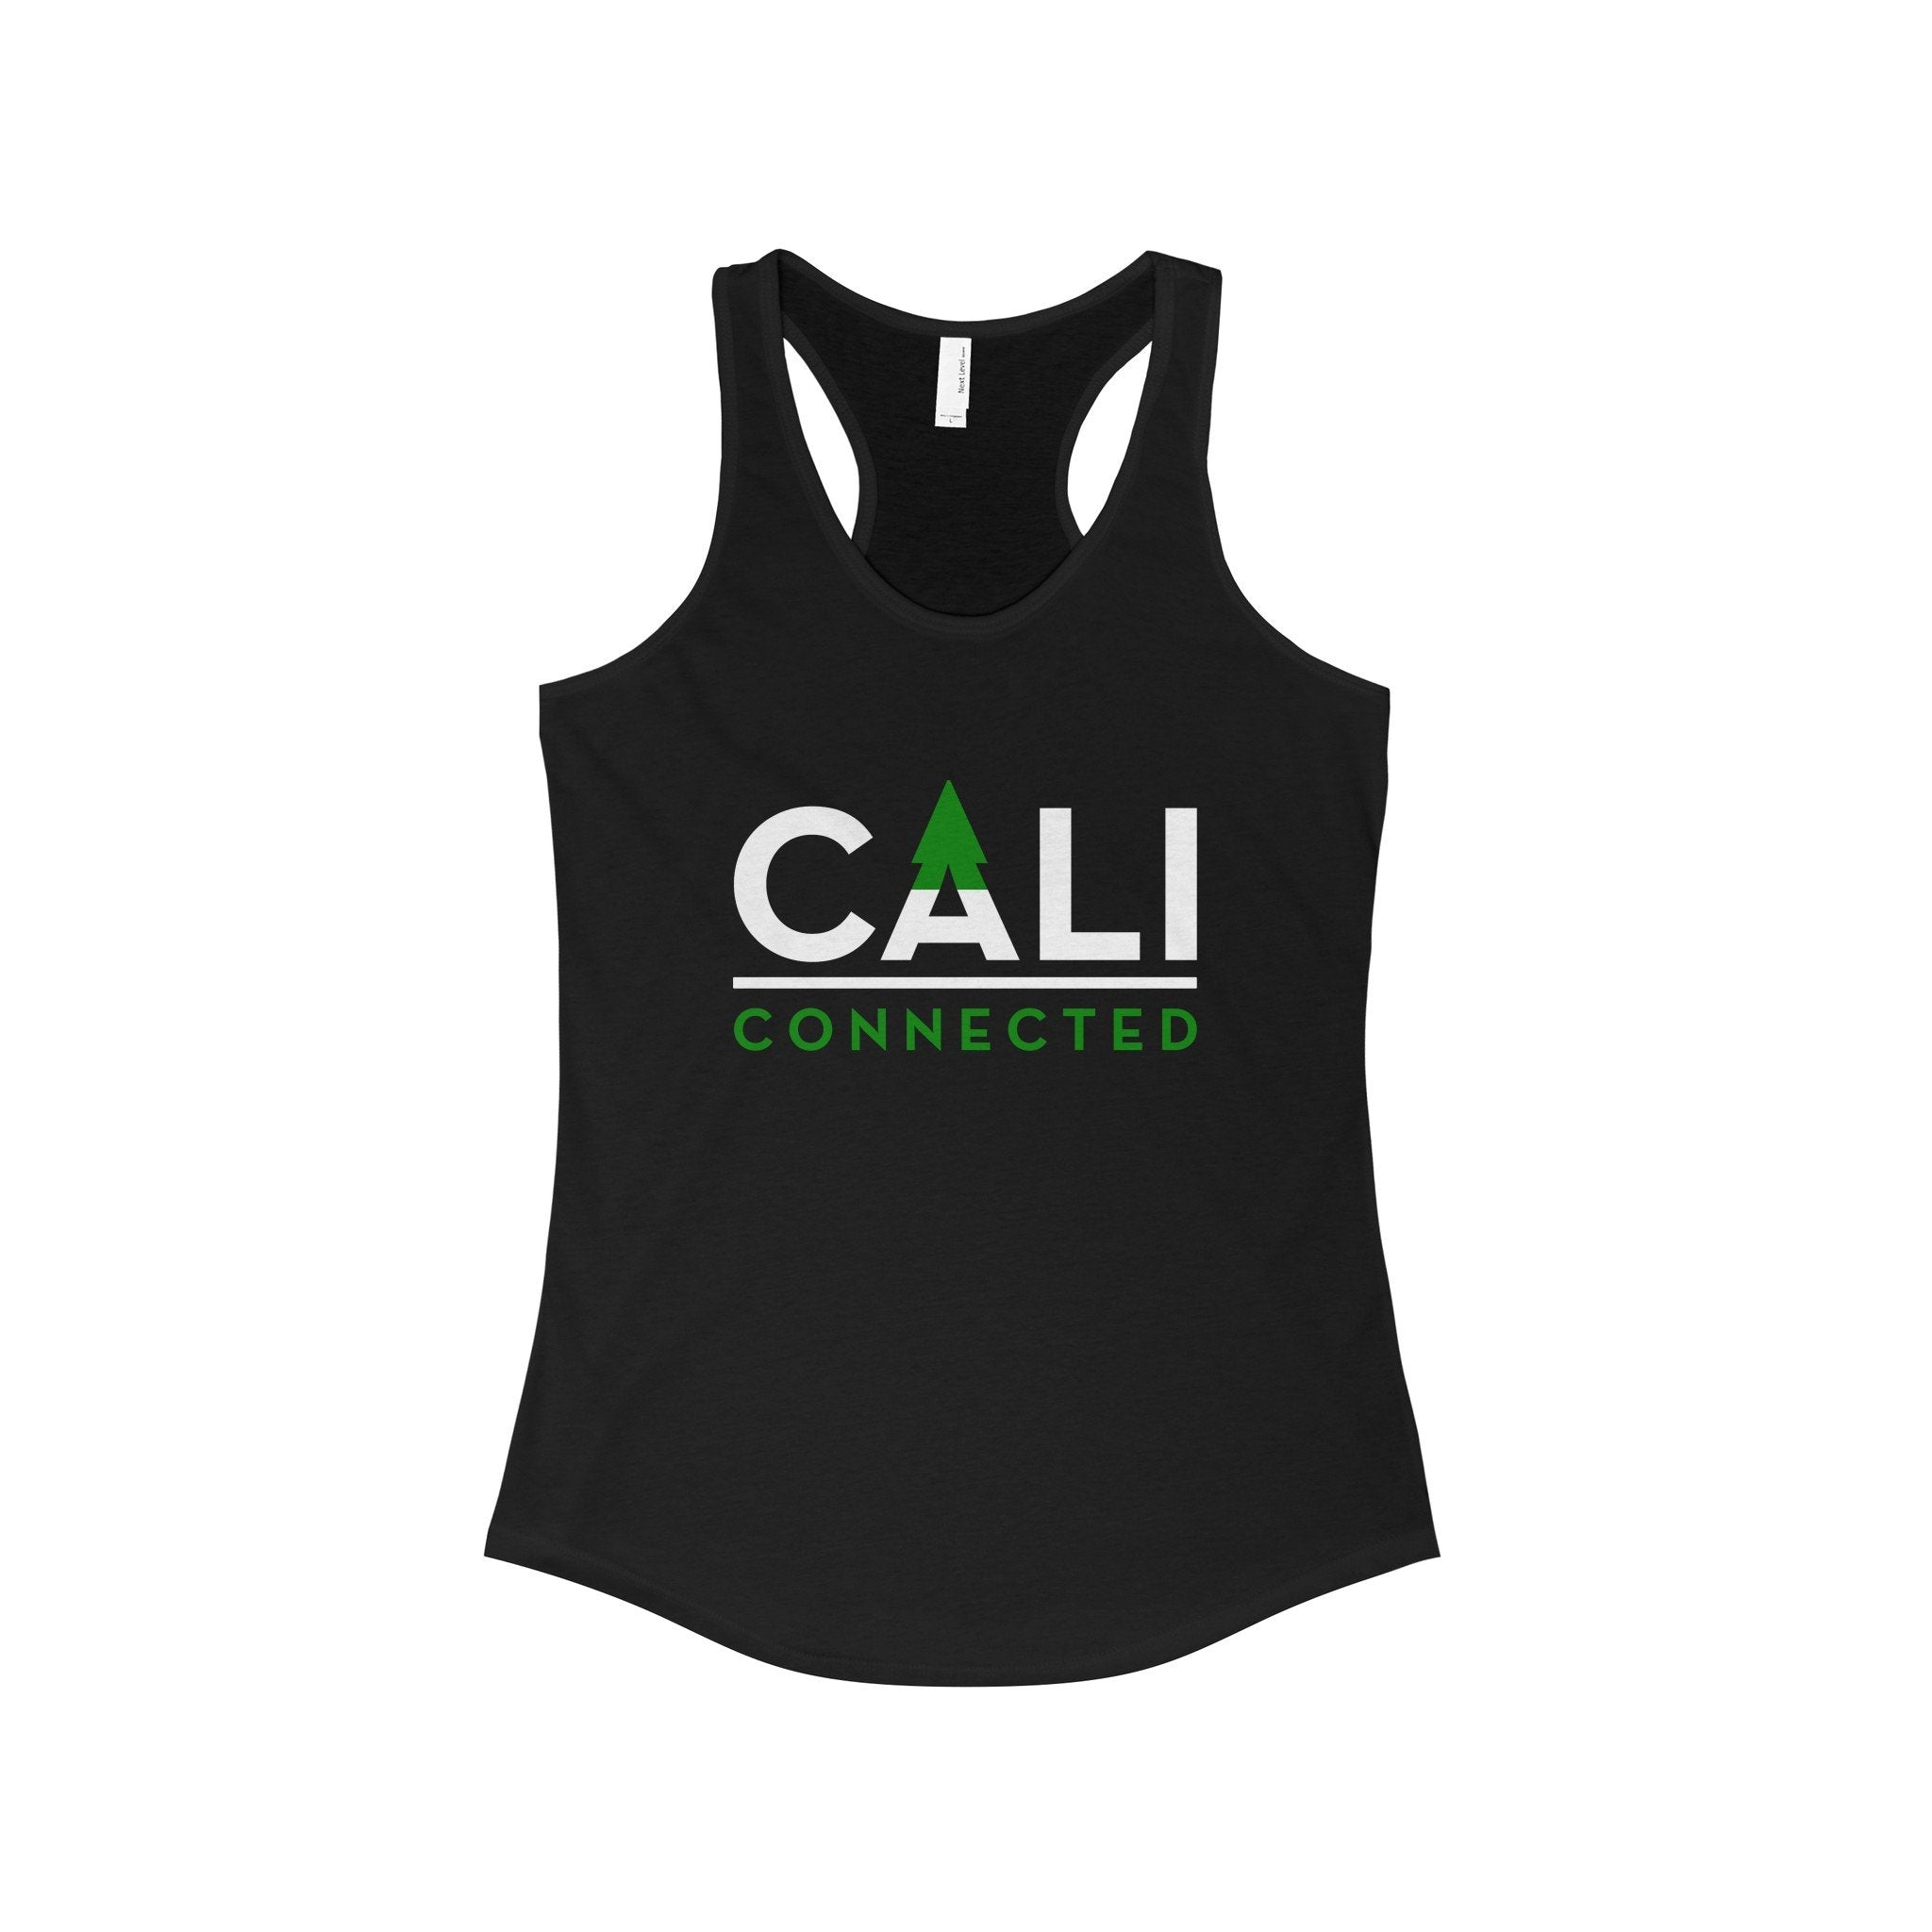 CaliConnected Women's Slim Fit Black Racerback Tank